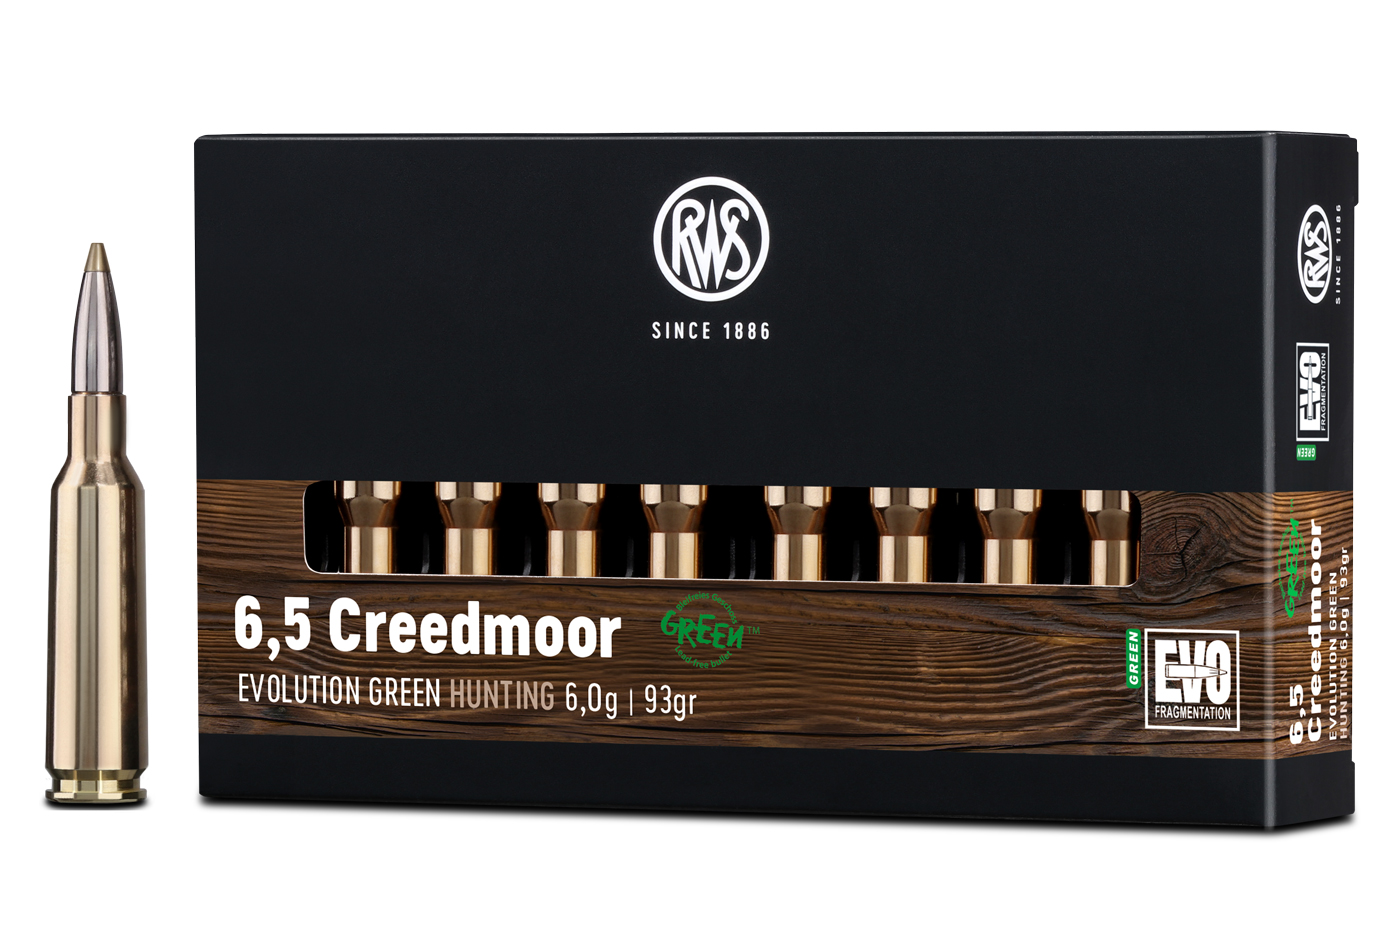 RWS 6,5 Creedmoor EVOLUTION GREEN